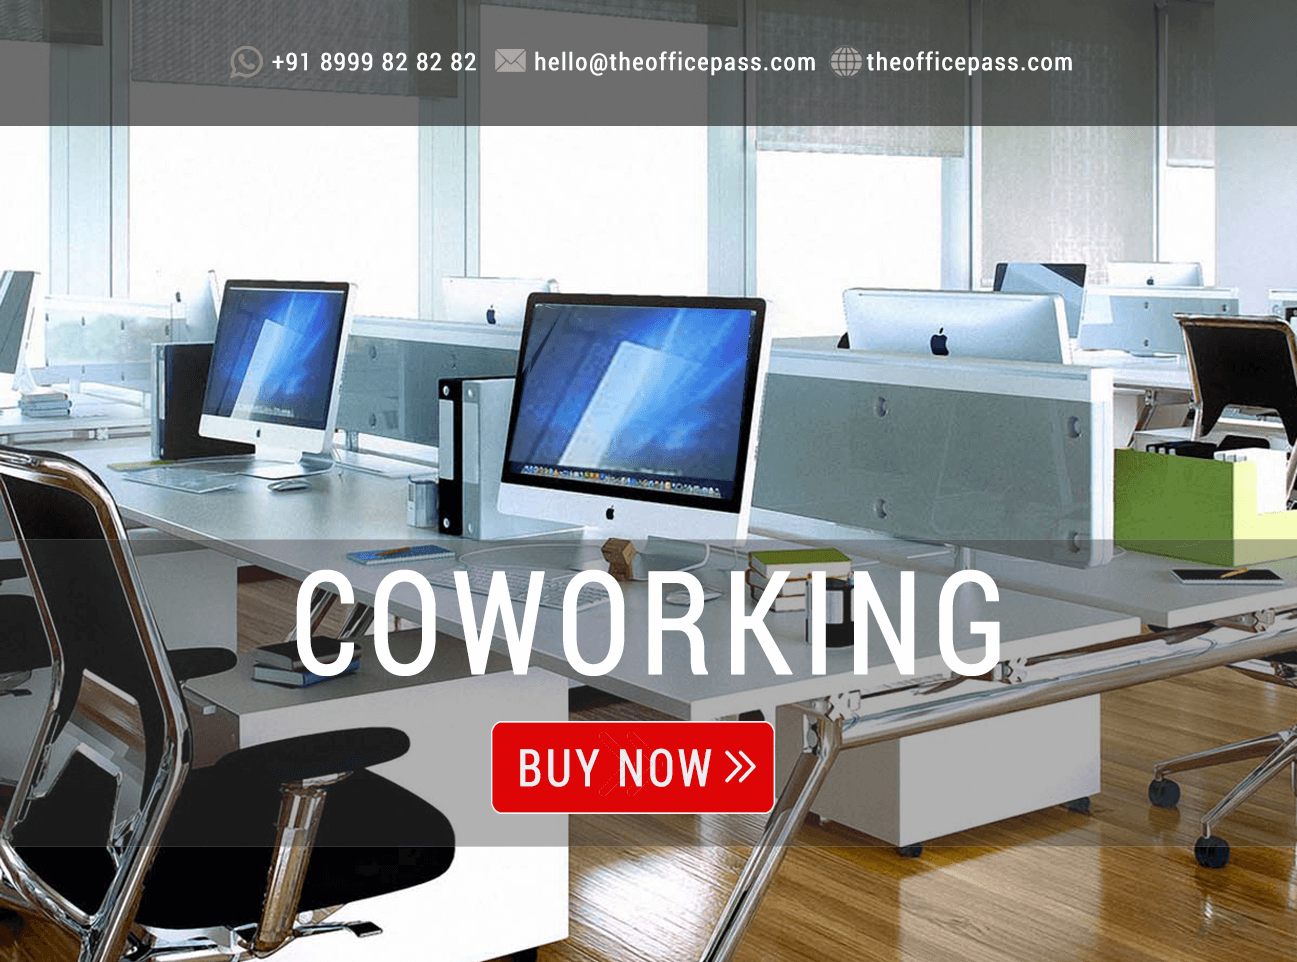 Book Coworking Office Space Online in Under 3 Minutes